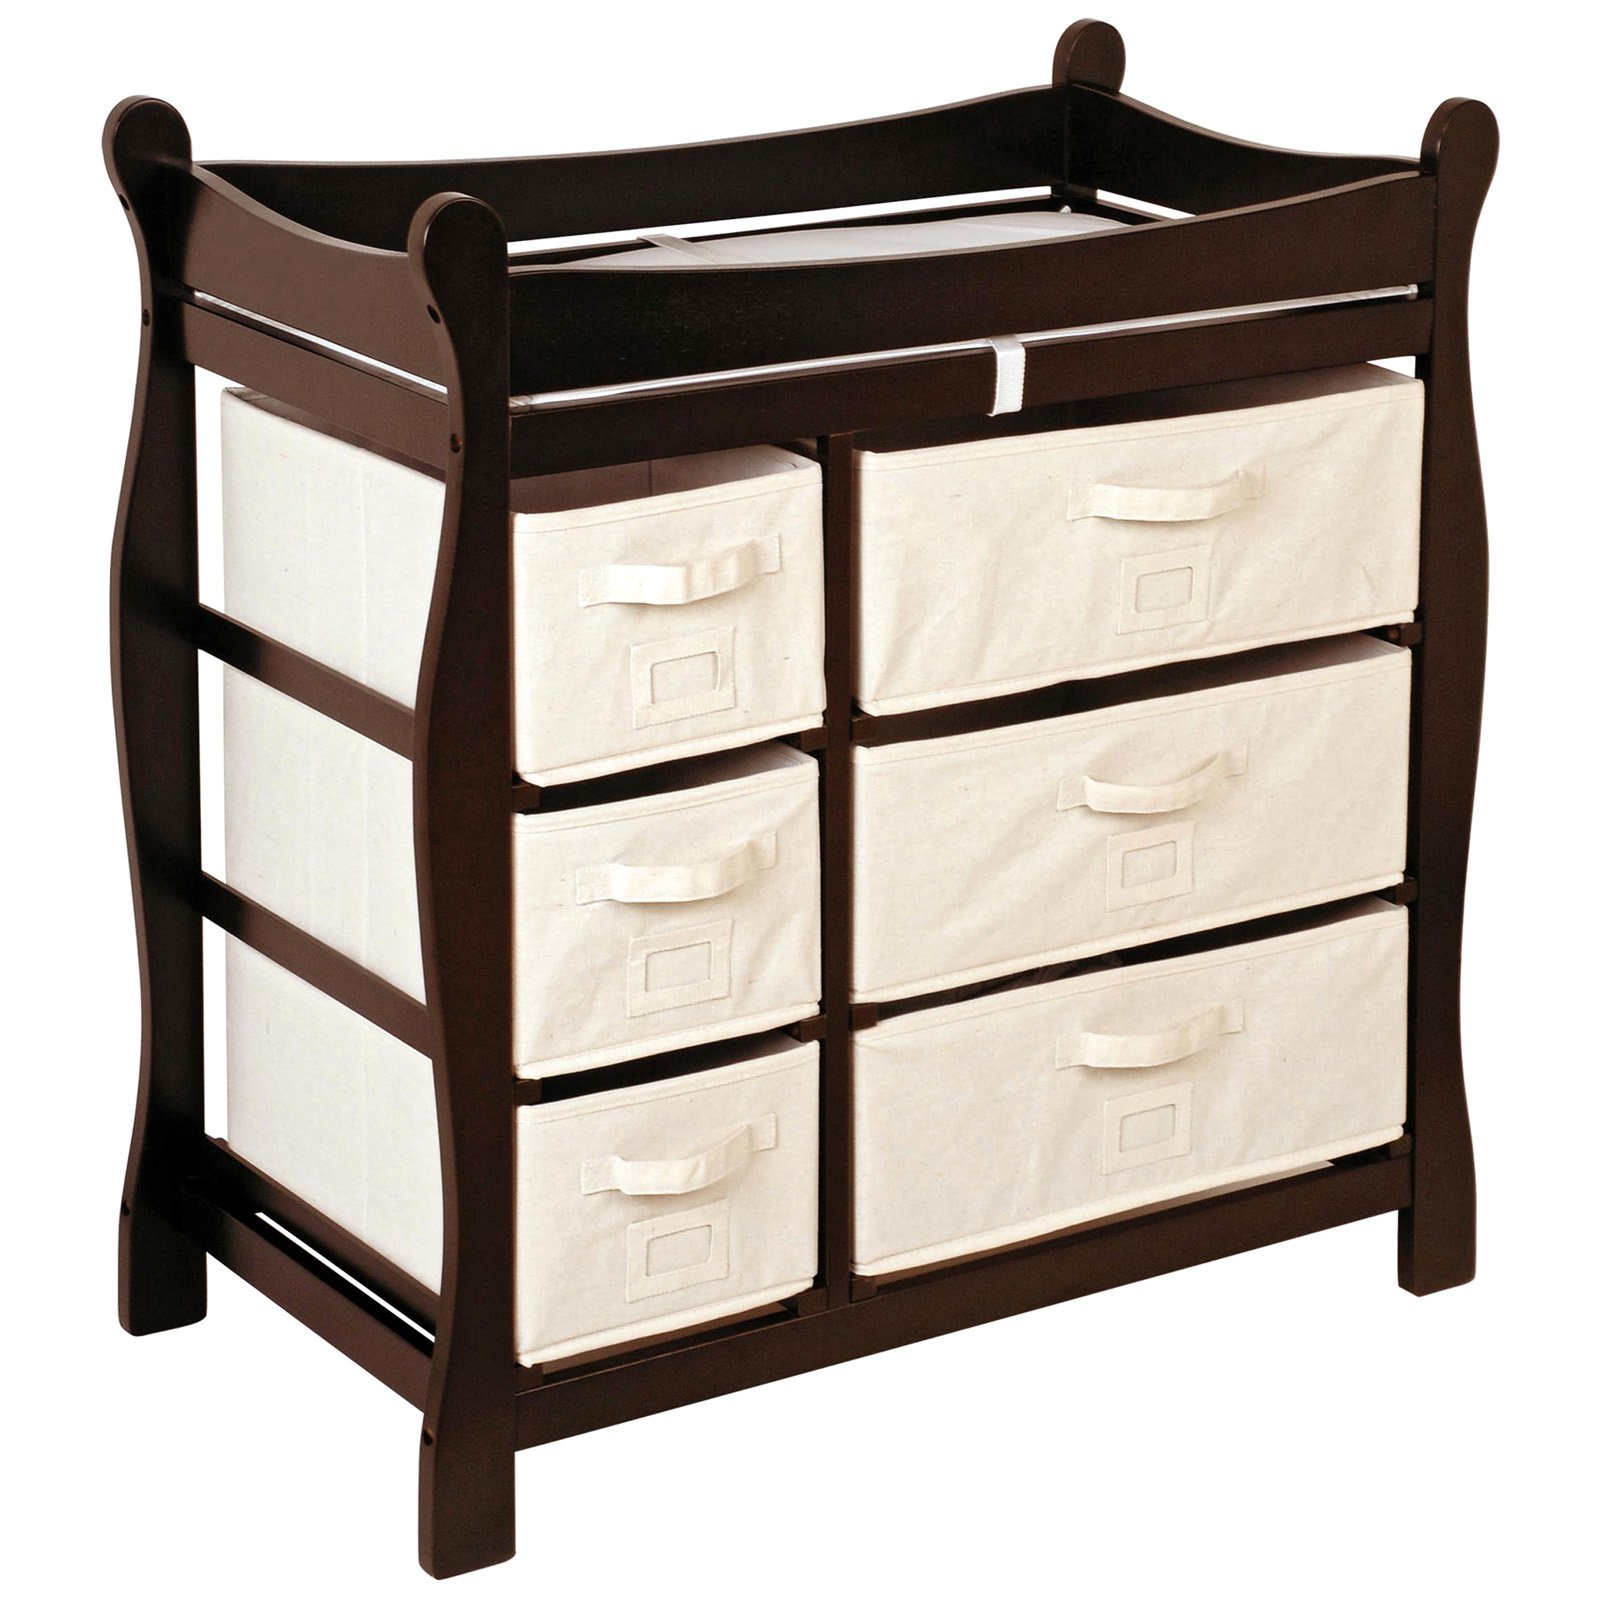 Badger Basket Changing Table with Six Baskets, Espresso by Badger Basket